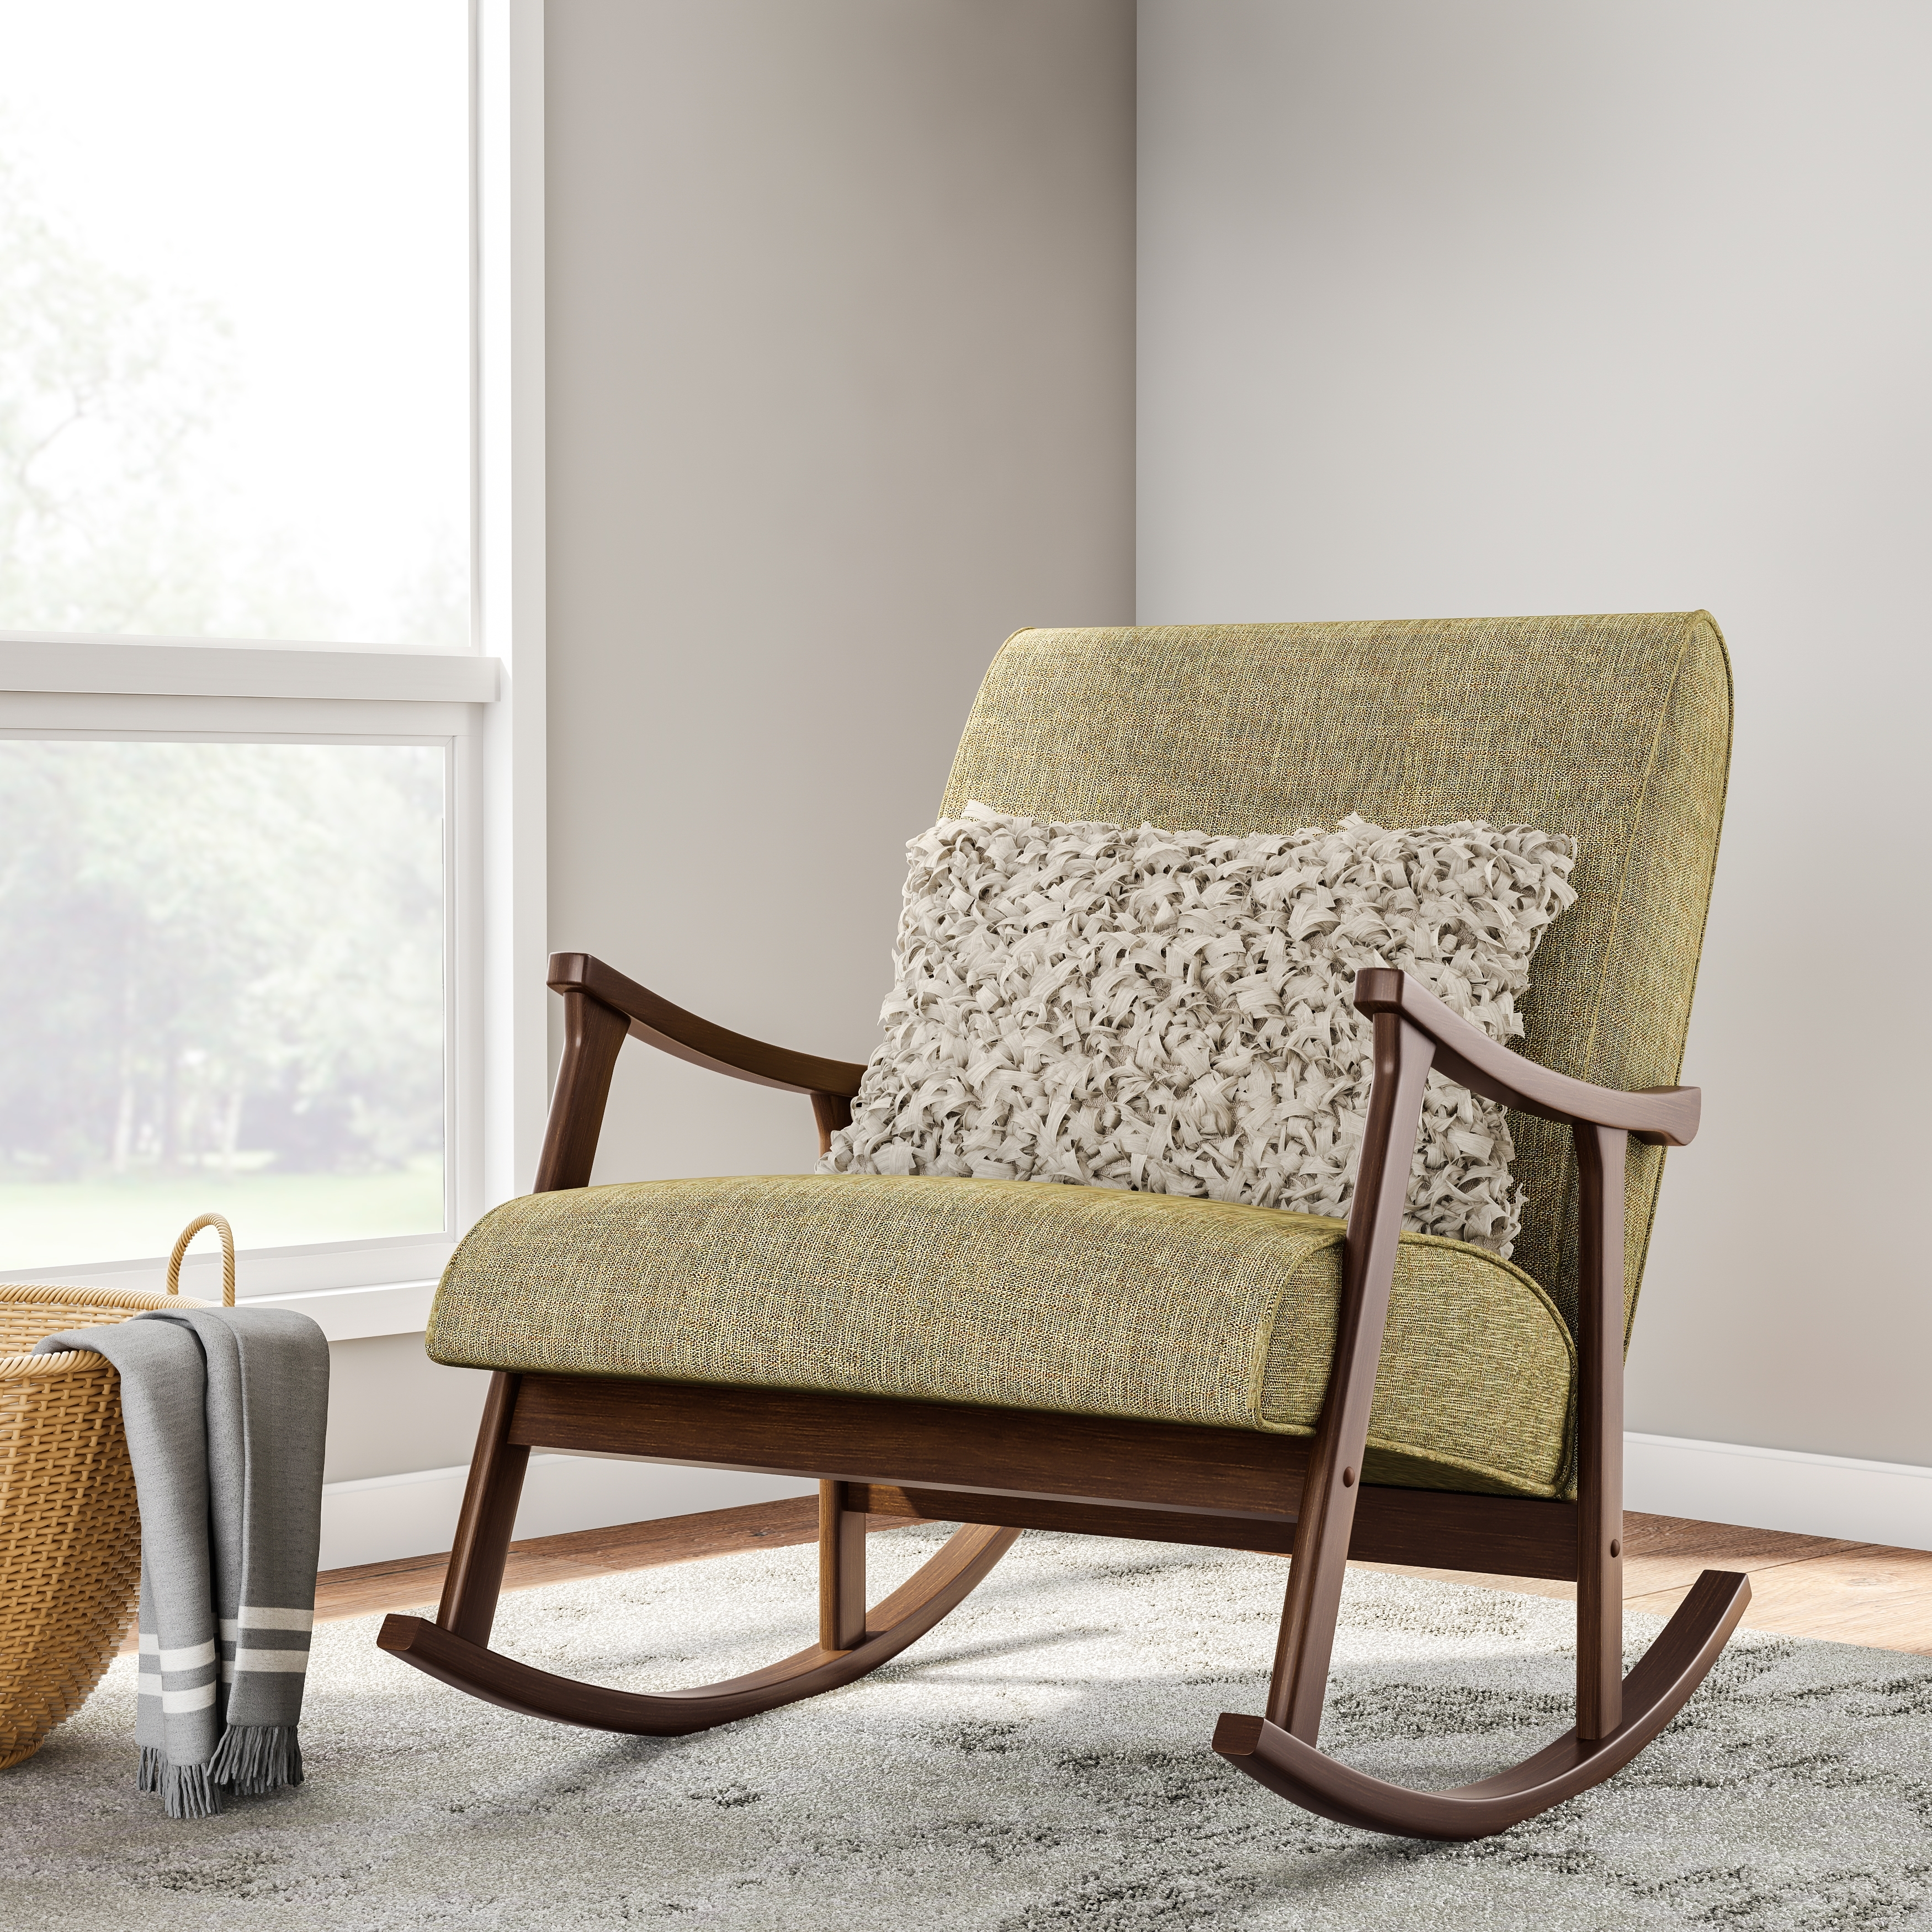 Buy Rocking Chairs Living Room Chairs Online At Overstock | Our Intended For Rocking Chairs For Adults (#3 of 15)